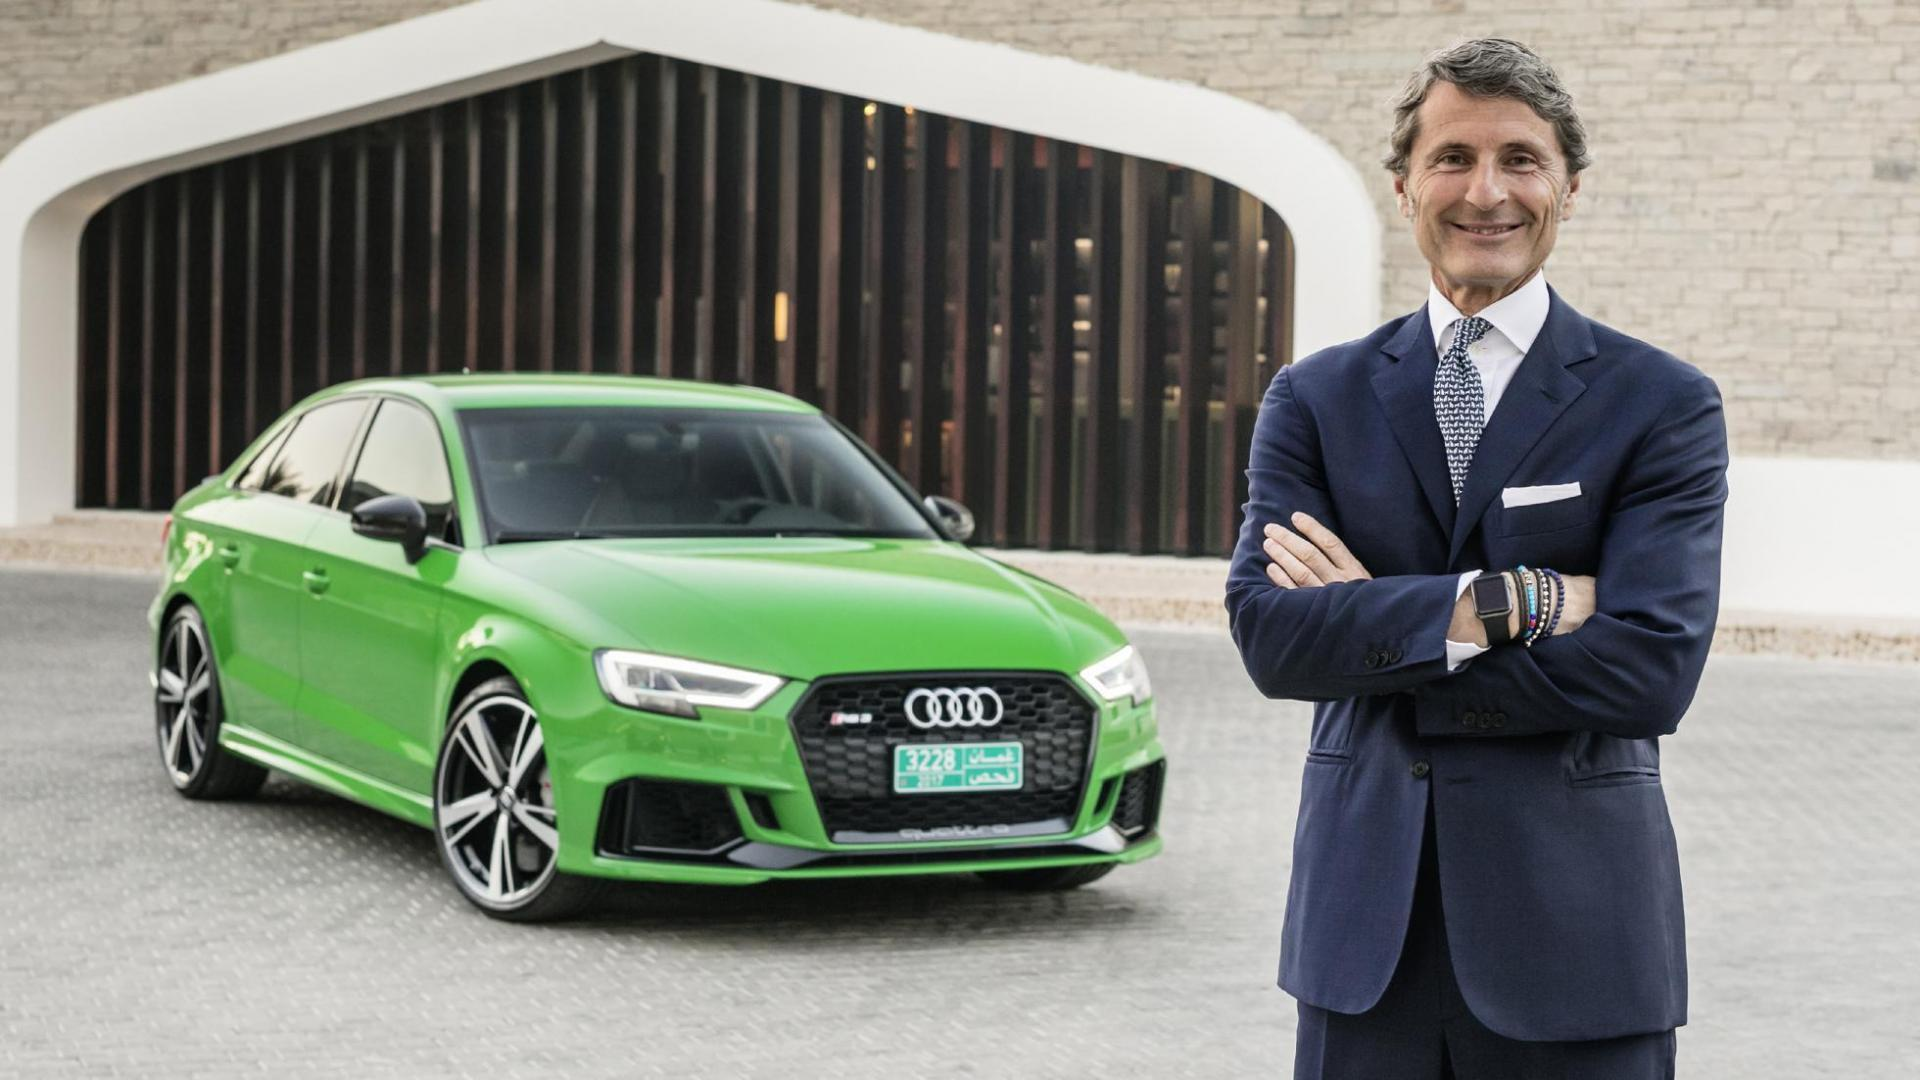 Audi RS hybride hypercar: Stephan Winkelmann interview